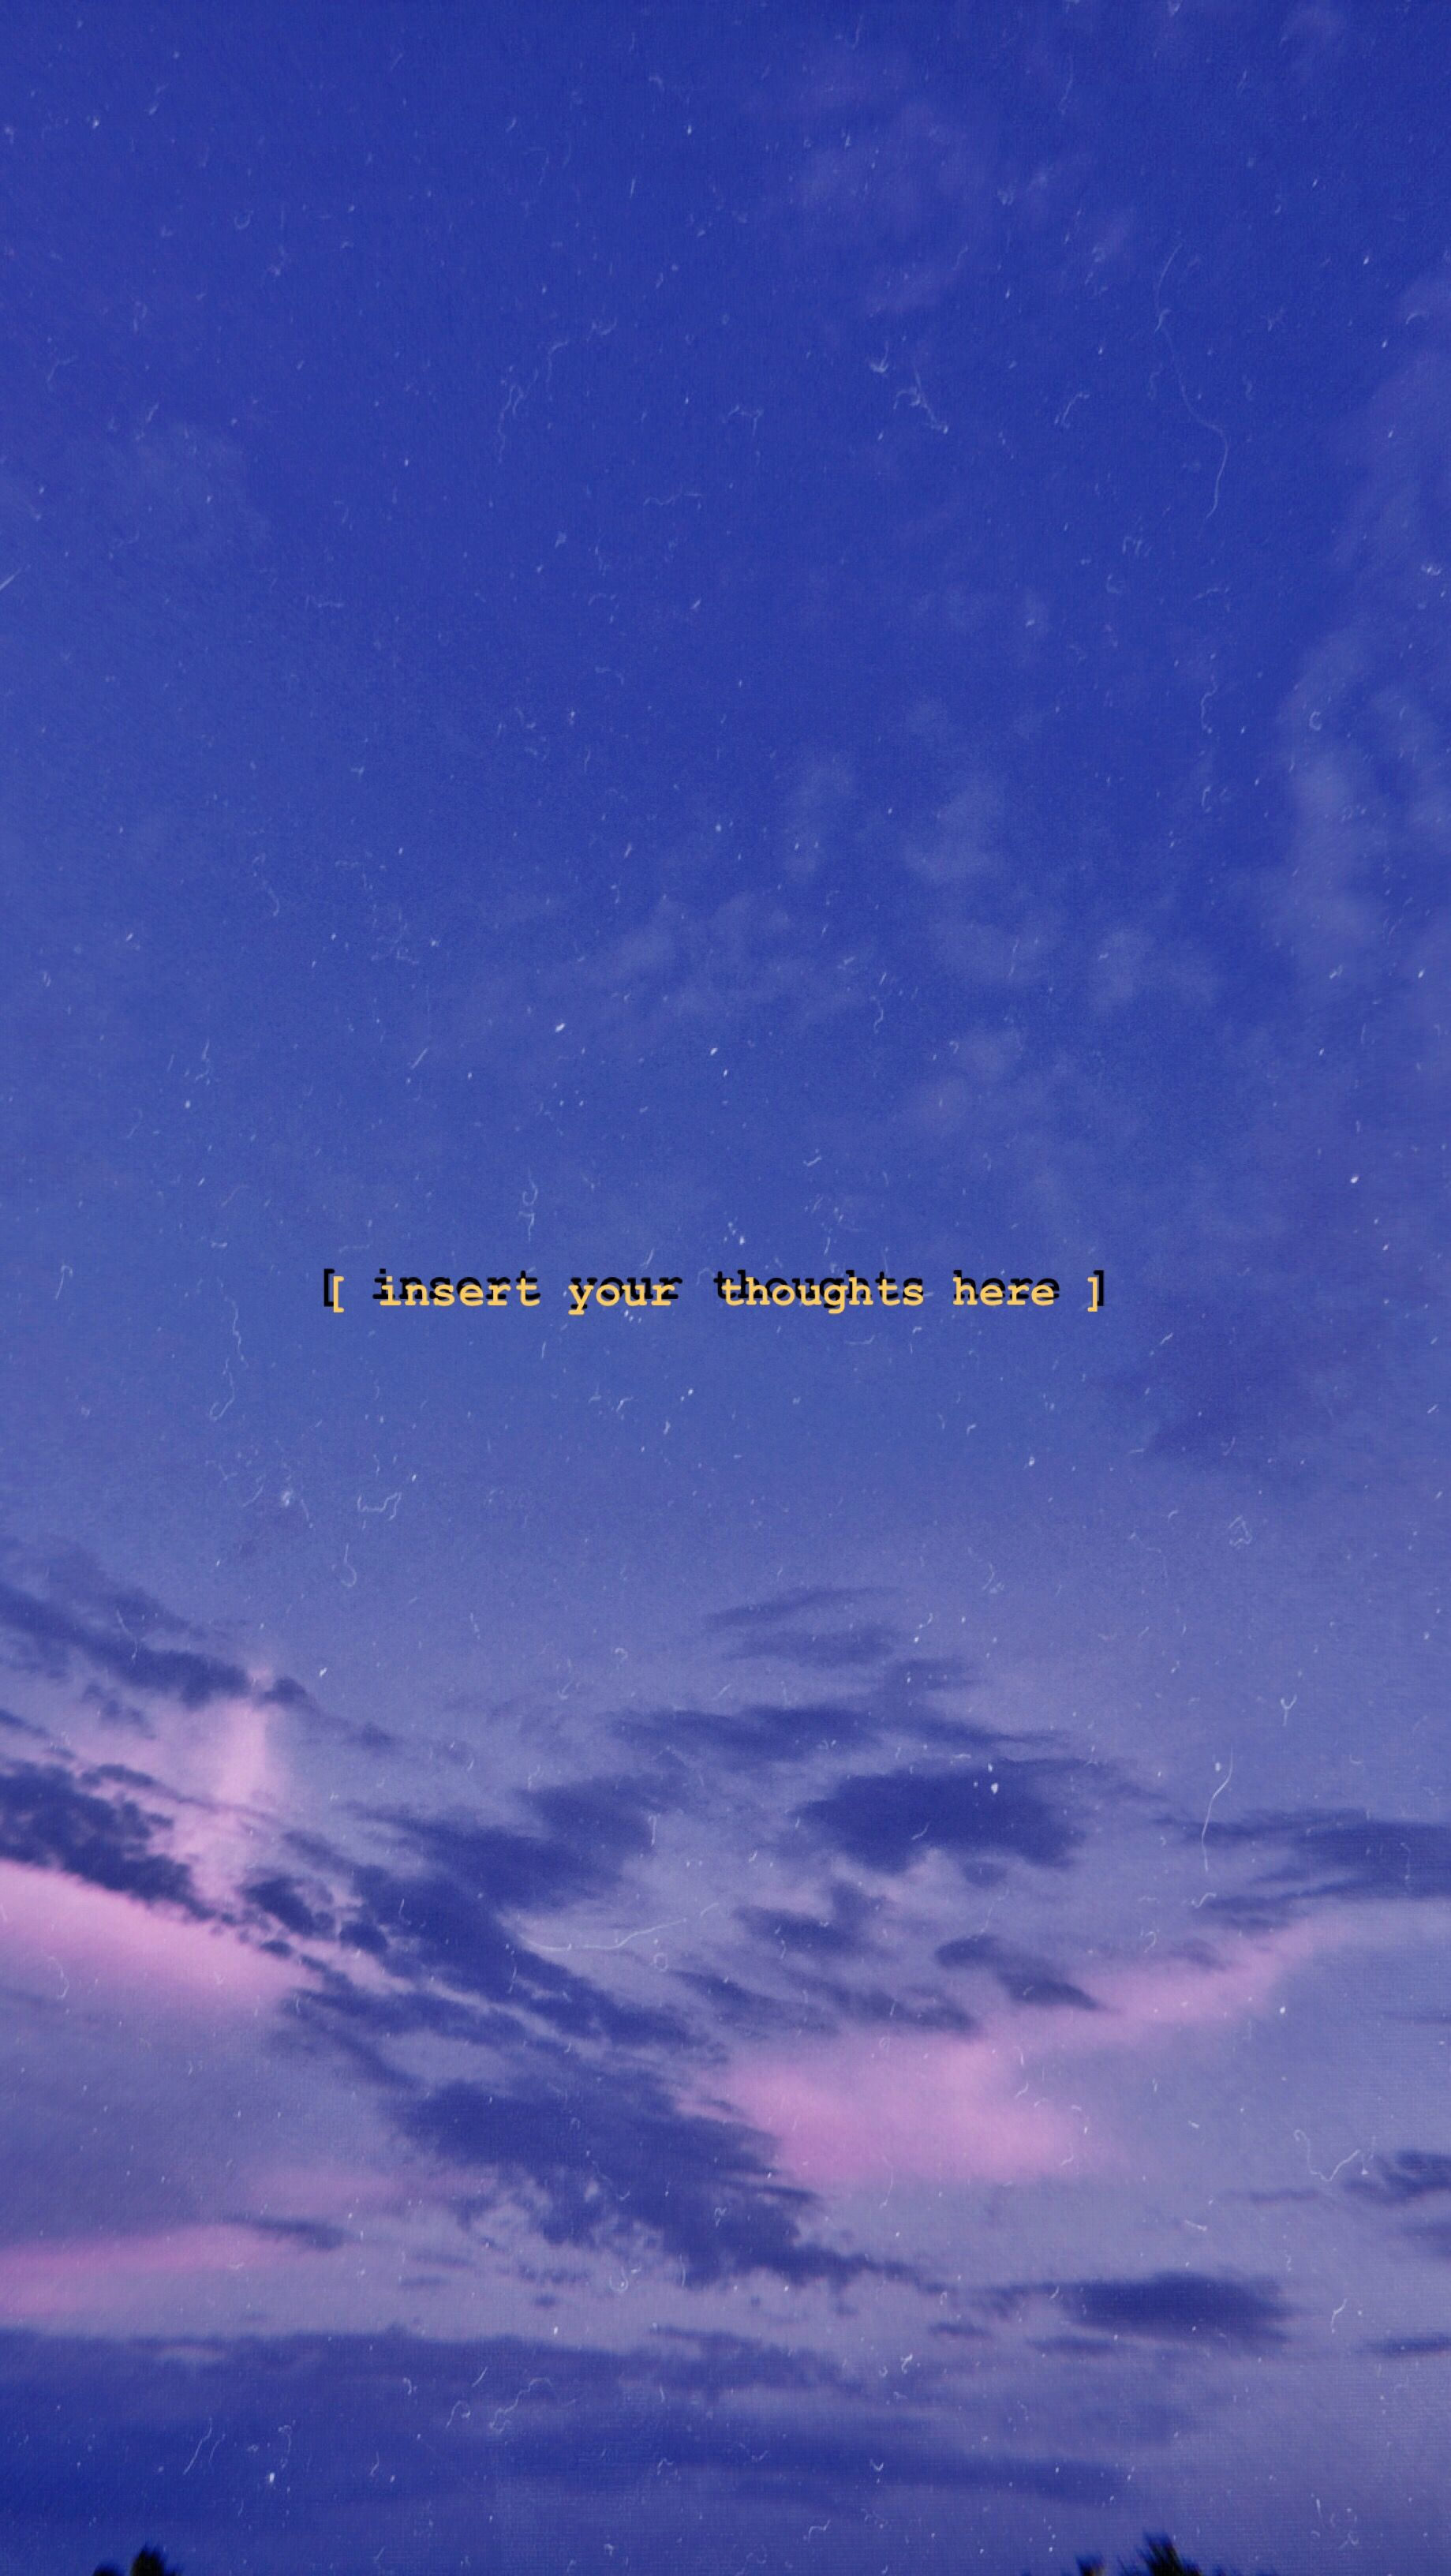 sky sunset purple text imagine quotes